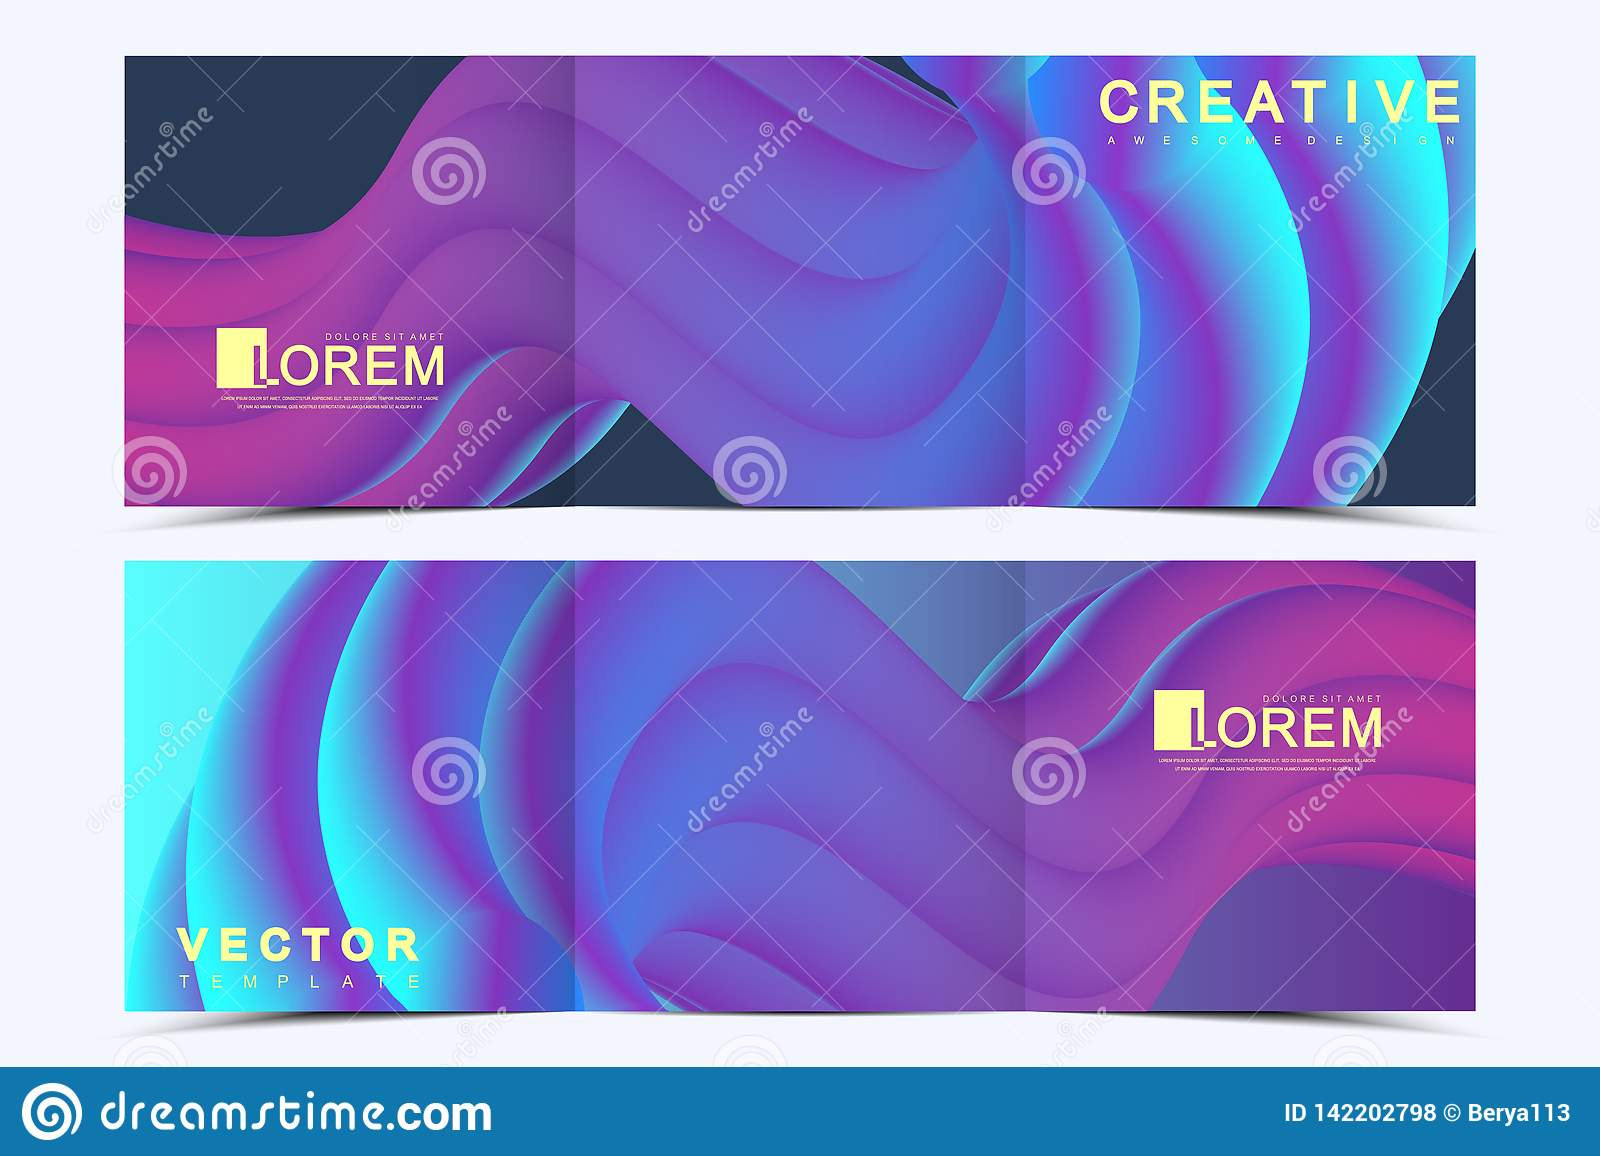 Modern vector template for trifold square brochure, flyer, cover, report, catalog, magazine. Abstract fluid 3d shapes